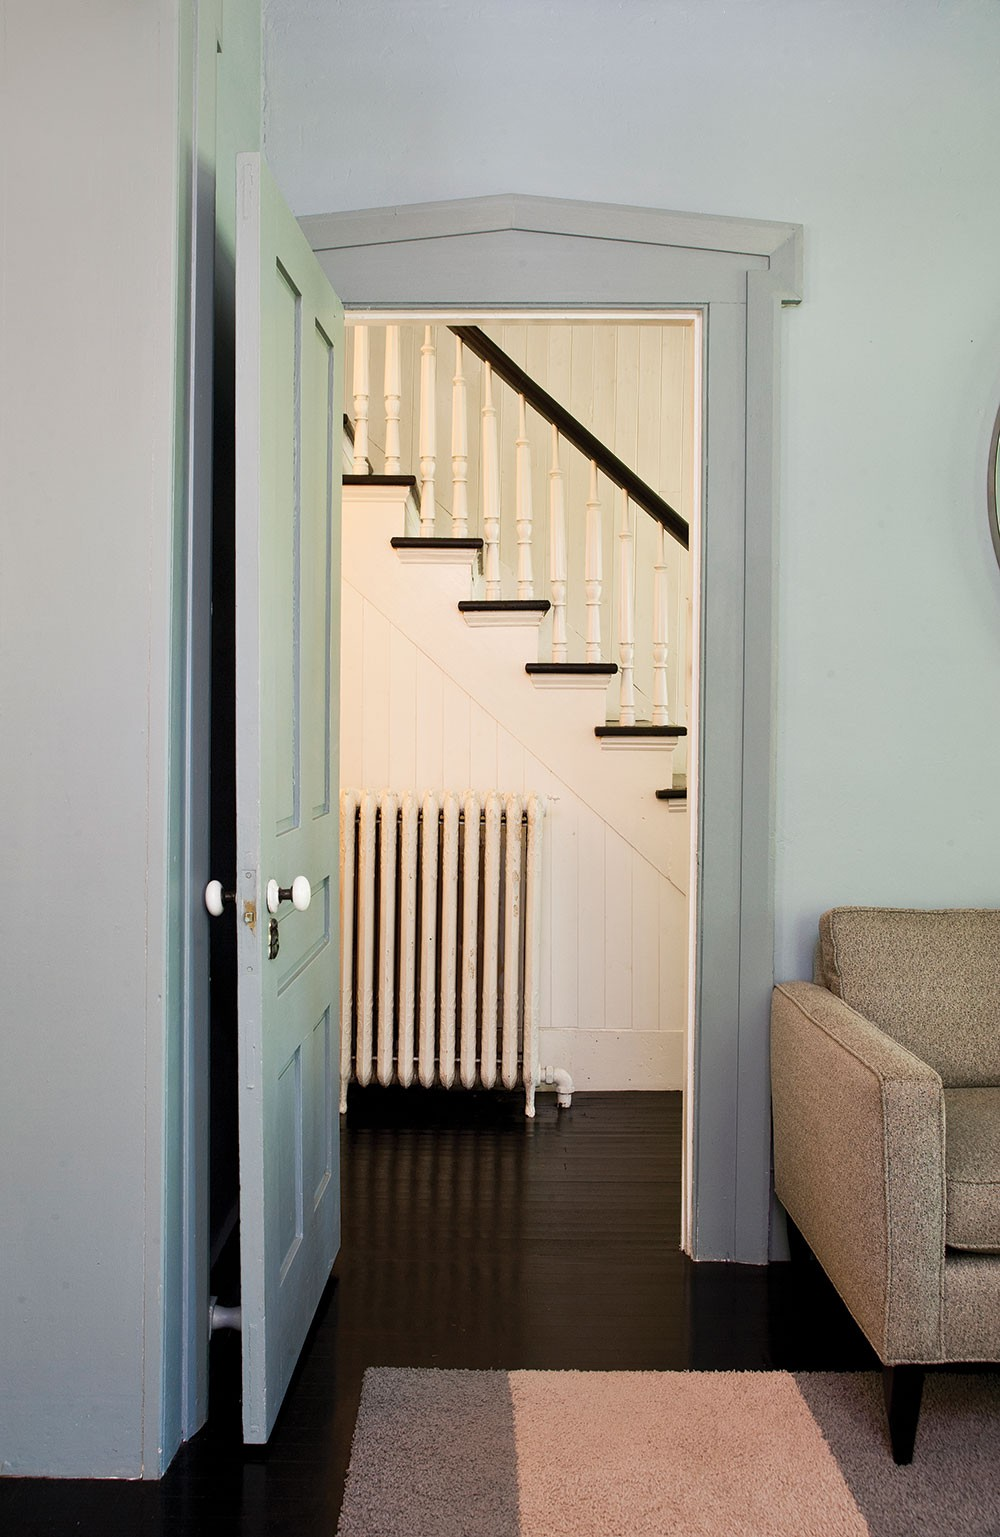 """The couple has restored the home's original staricase. """"We had to custom mill the spindles and custom build the new bannister,"""" Sexton says. - DEBORAH DEGRAFFENREID"""